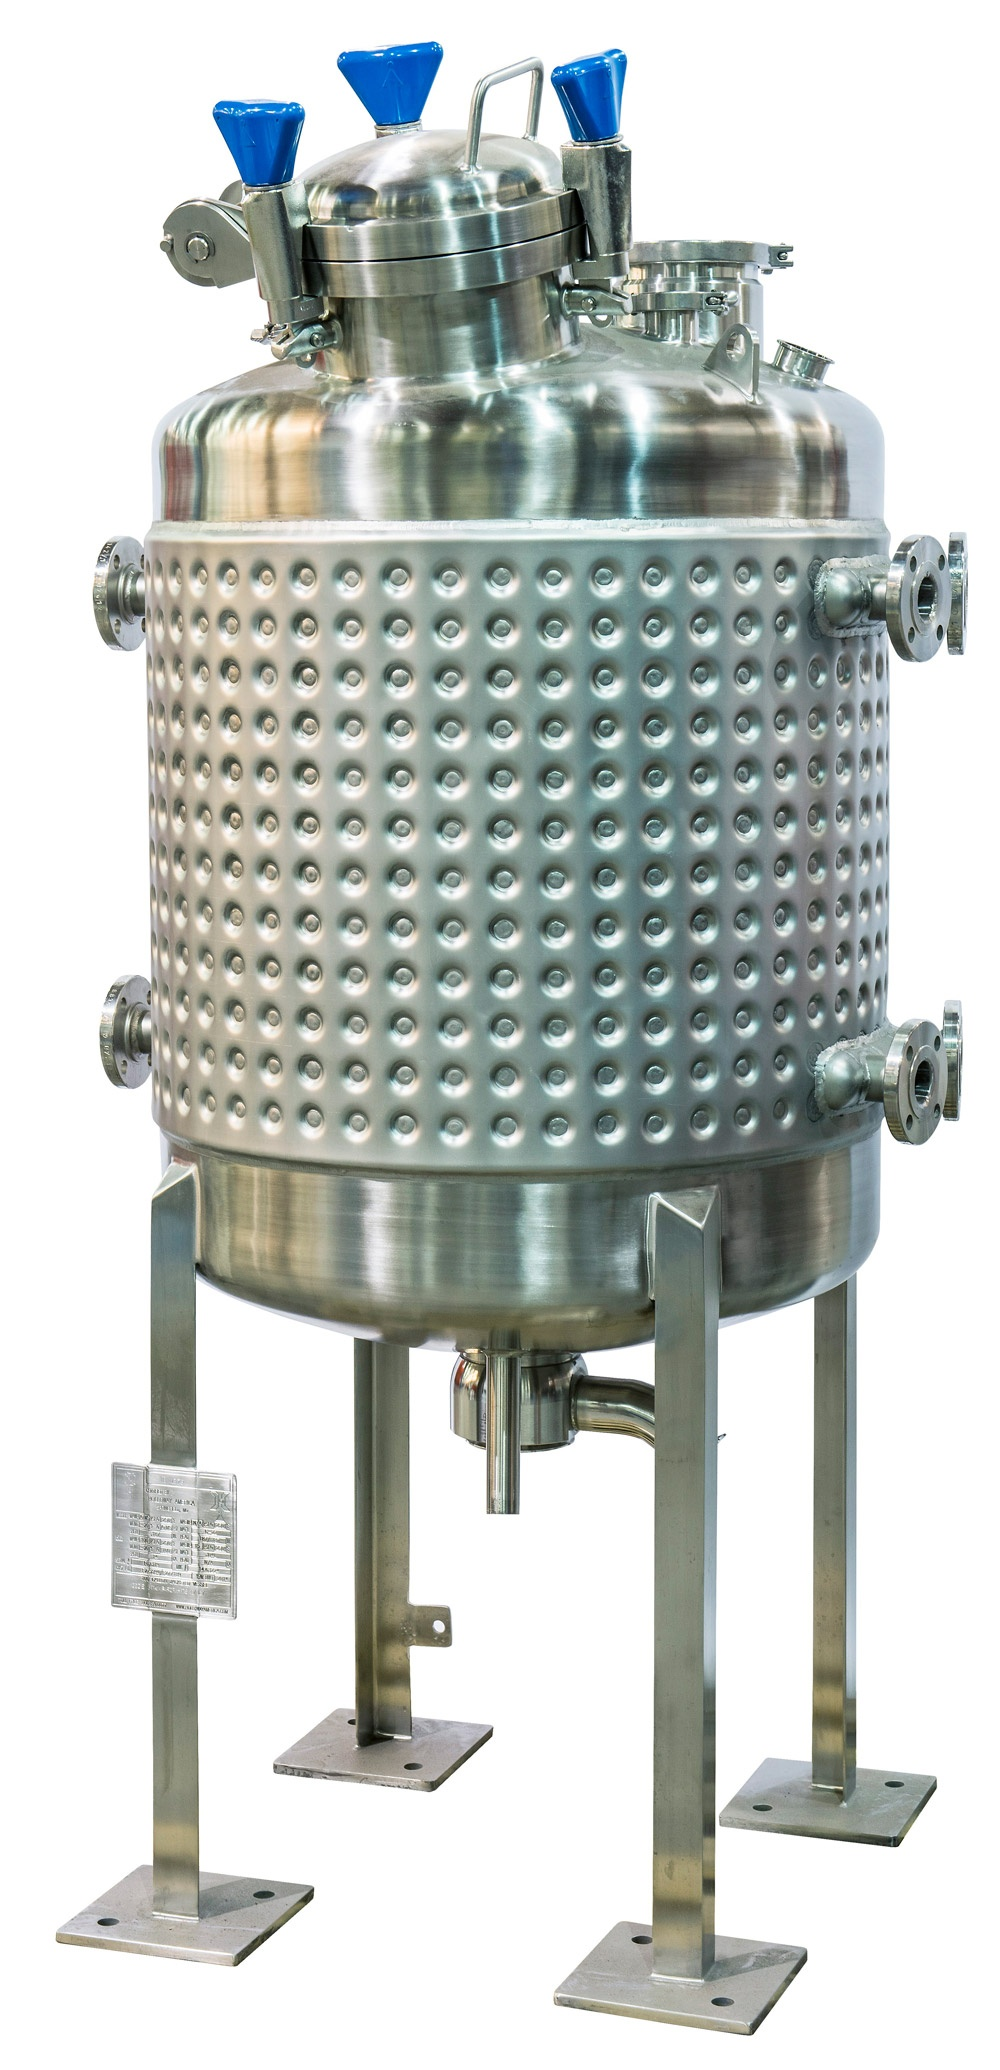 HOLLOWAY offers stainless steel mixing tanks and milk cooling tanks like the one shown here.